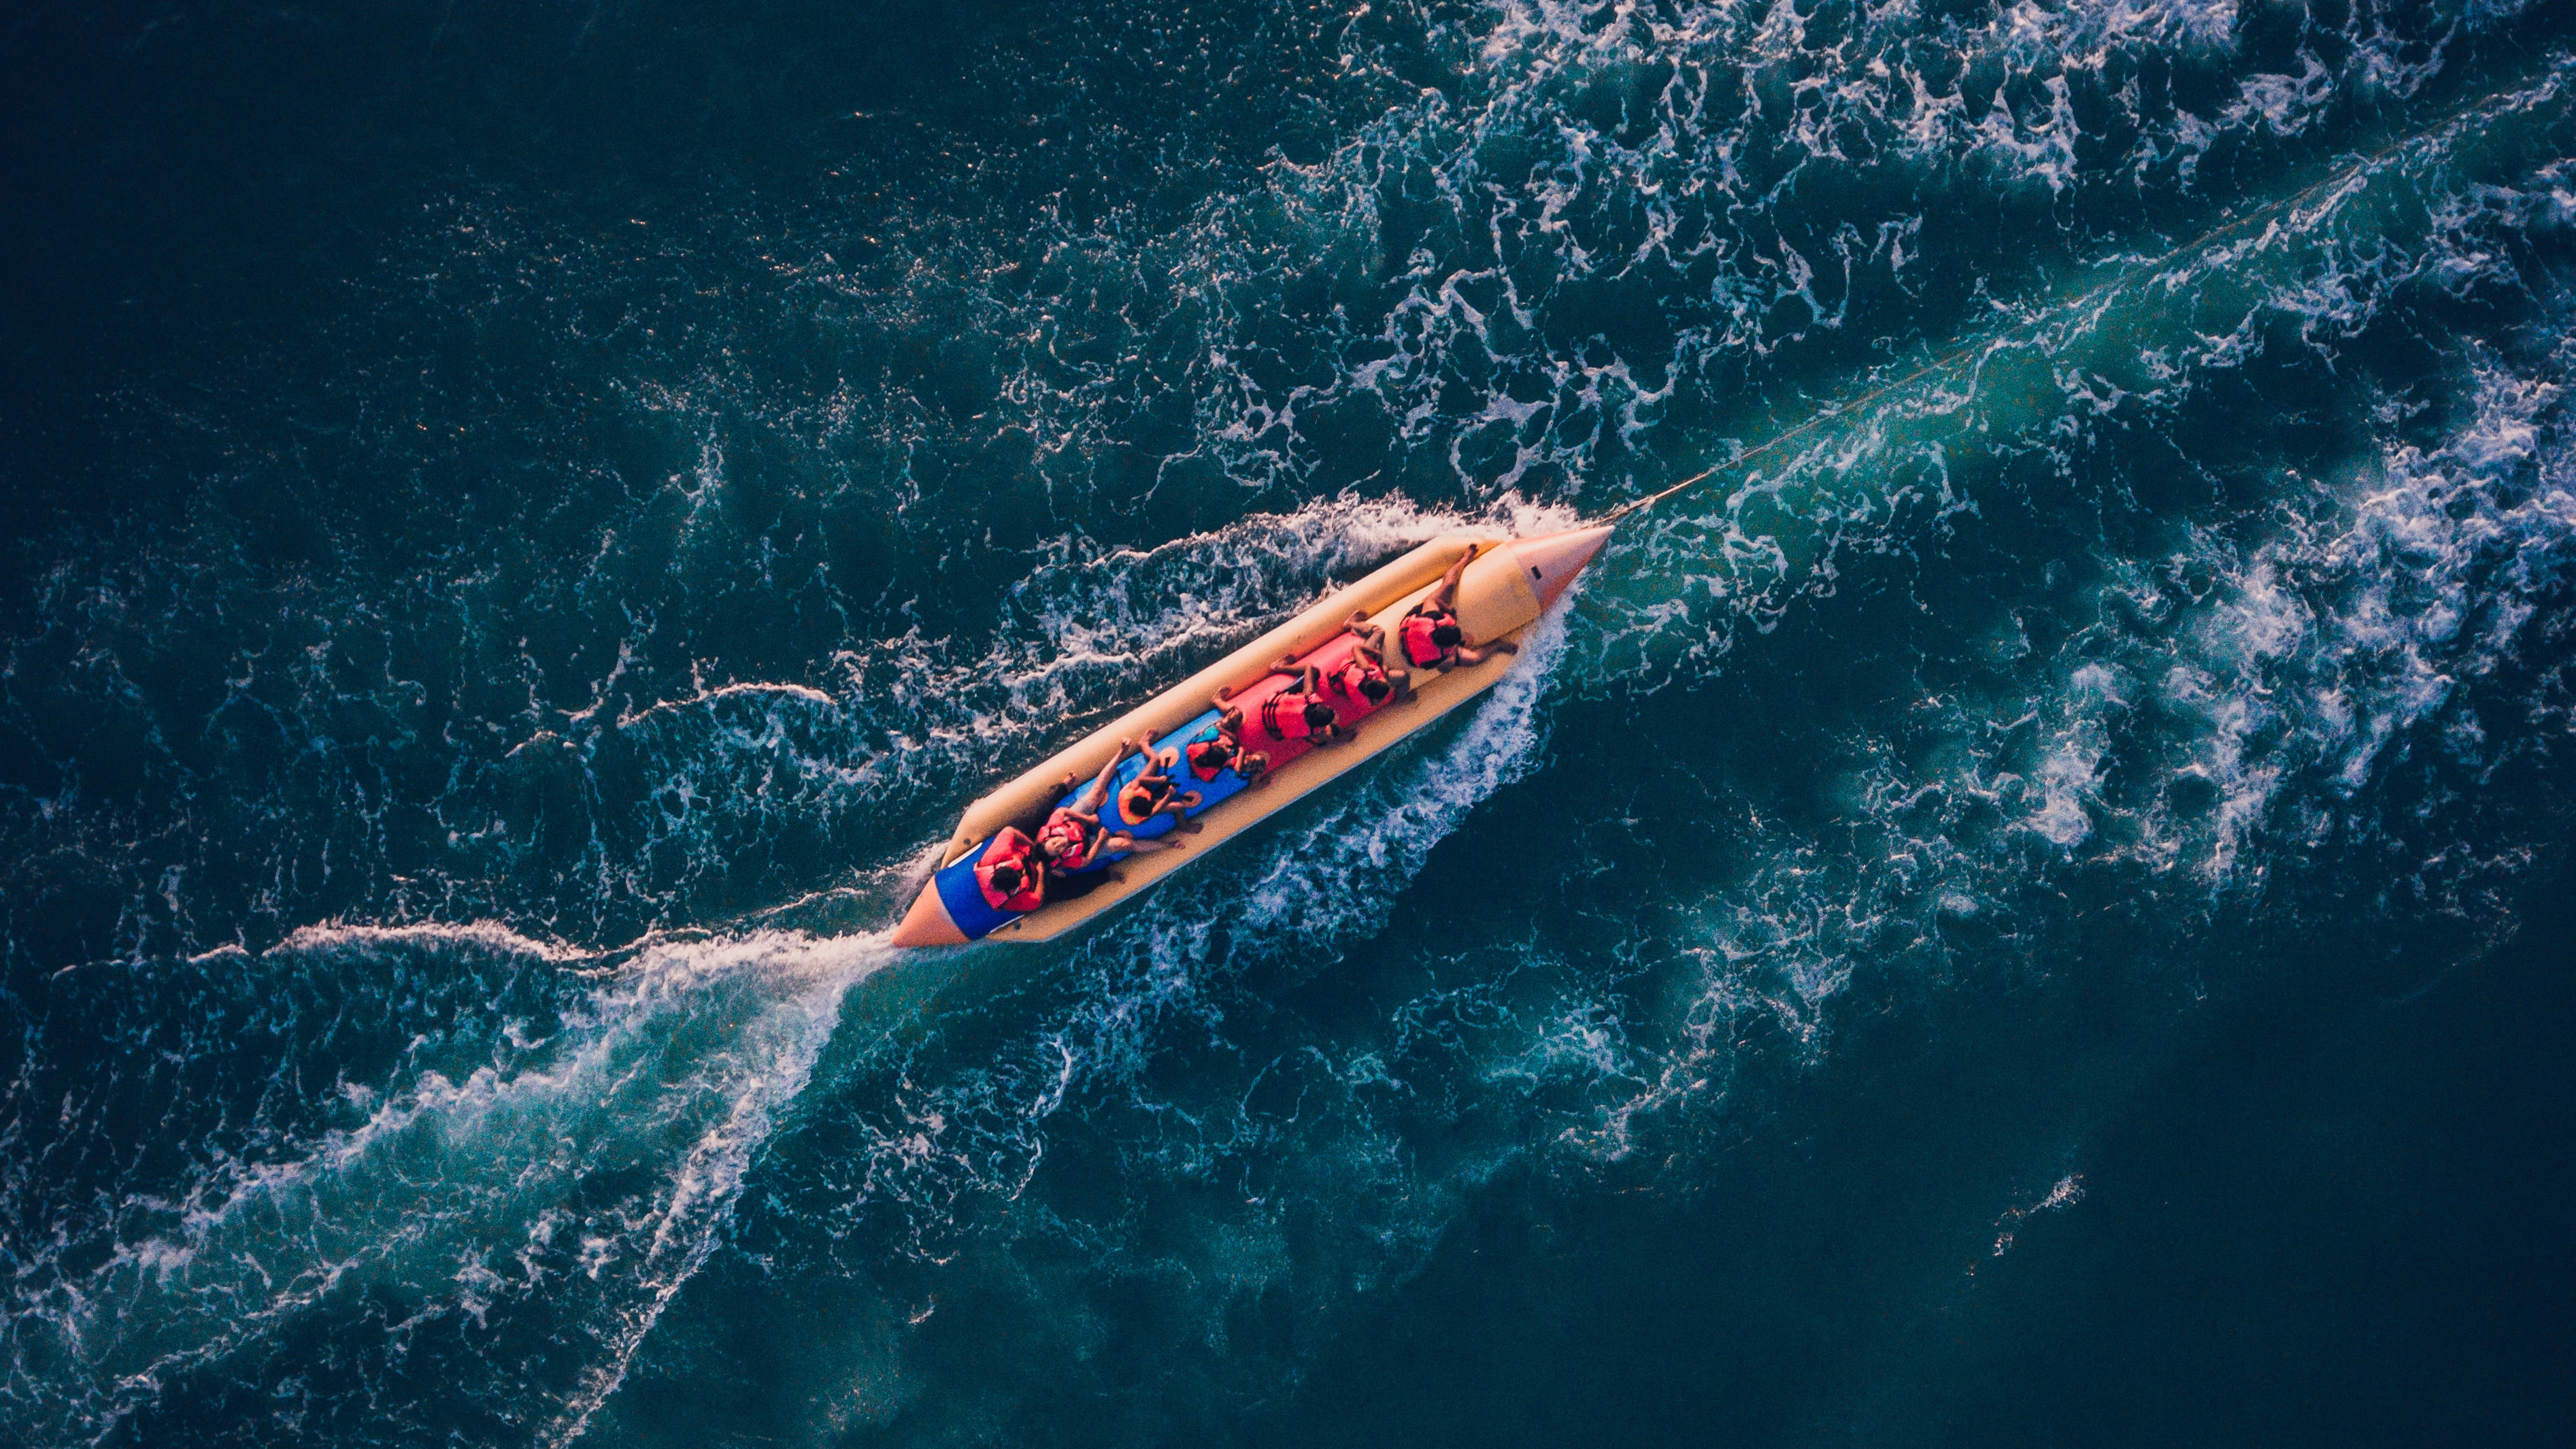 bird's eye view photography of boat on body of water